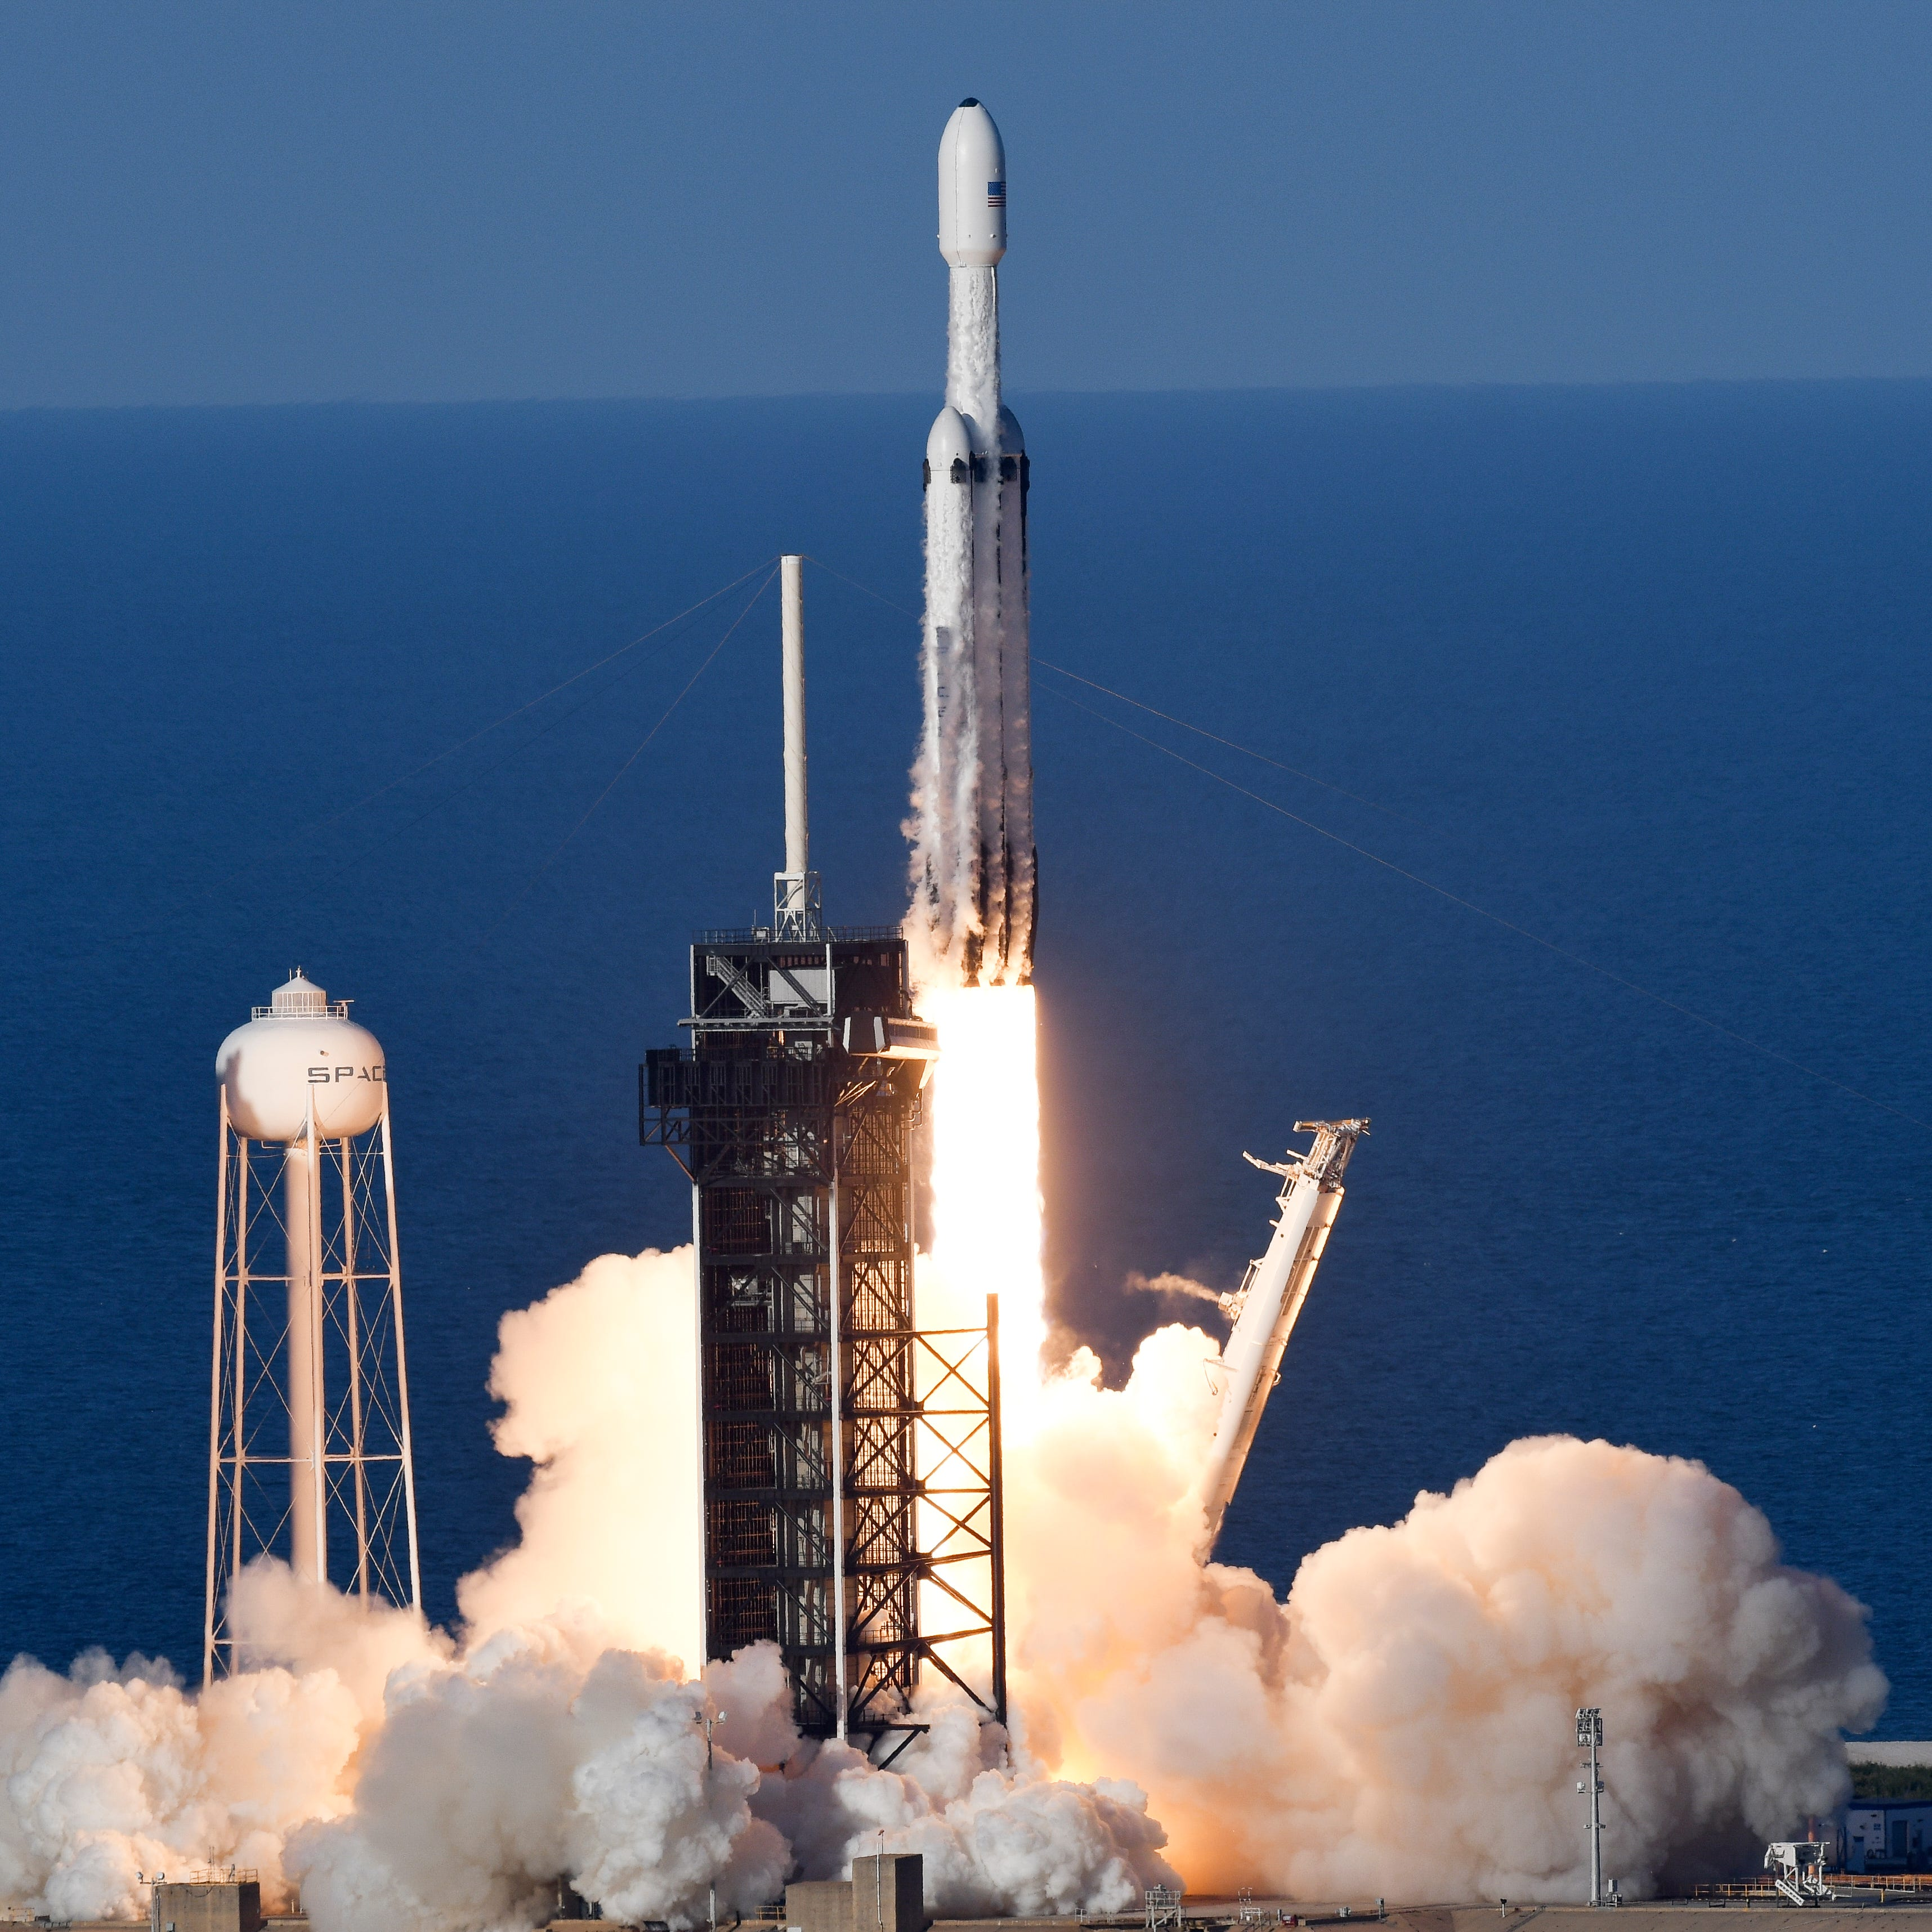 SpaceX launches Falcon Heavy from KSC and lands all three boosters